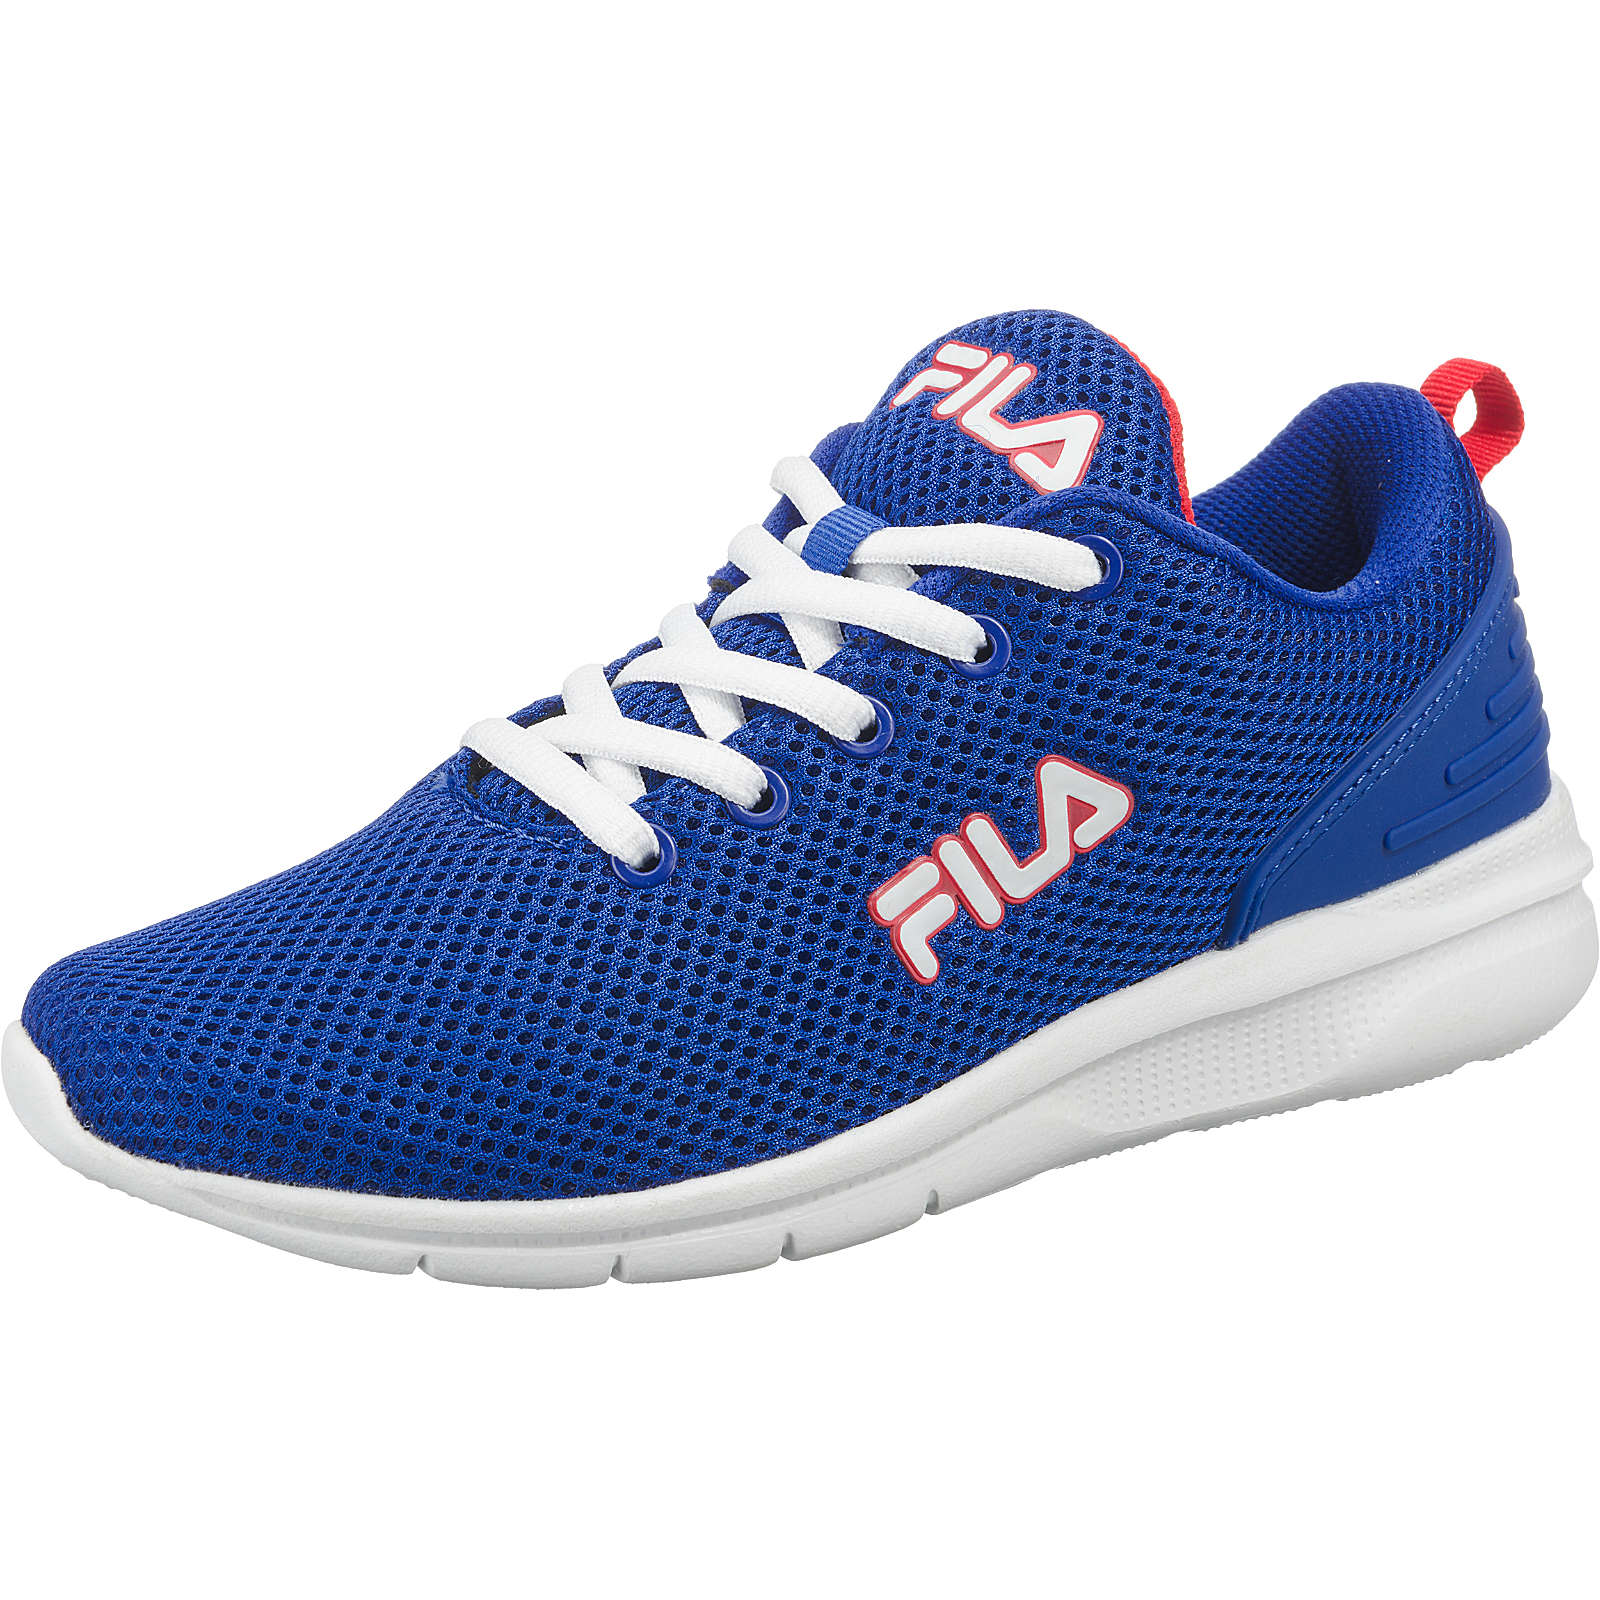 FILA Kinder Sneakers FURY RUN 3 blau Gr. 36